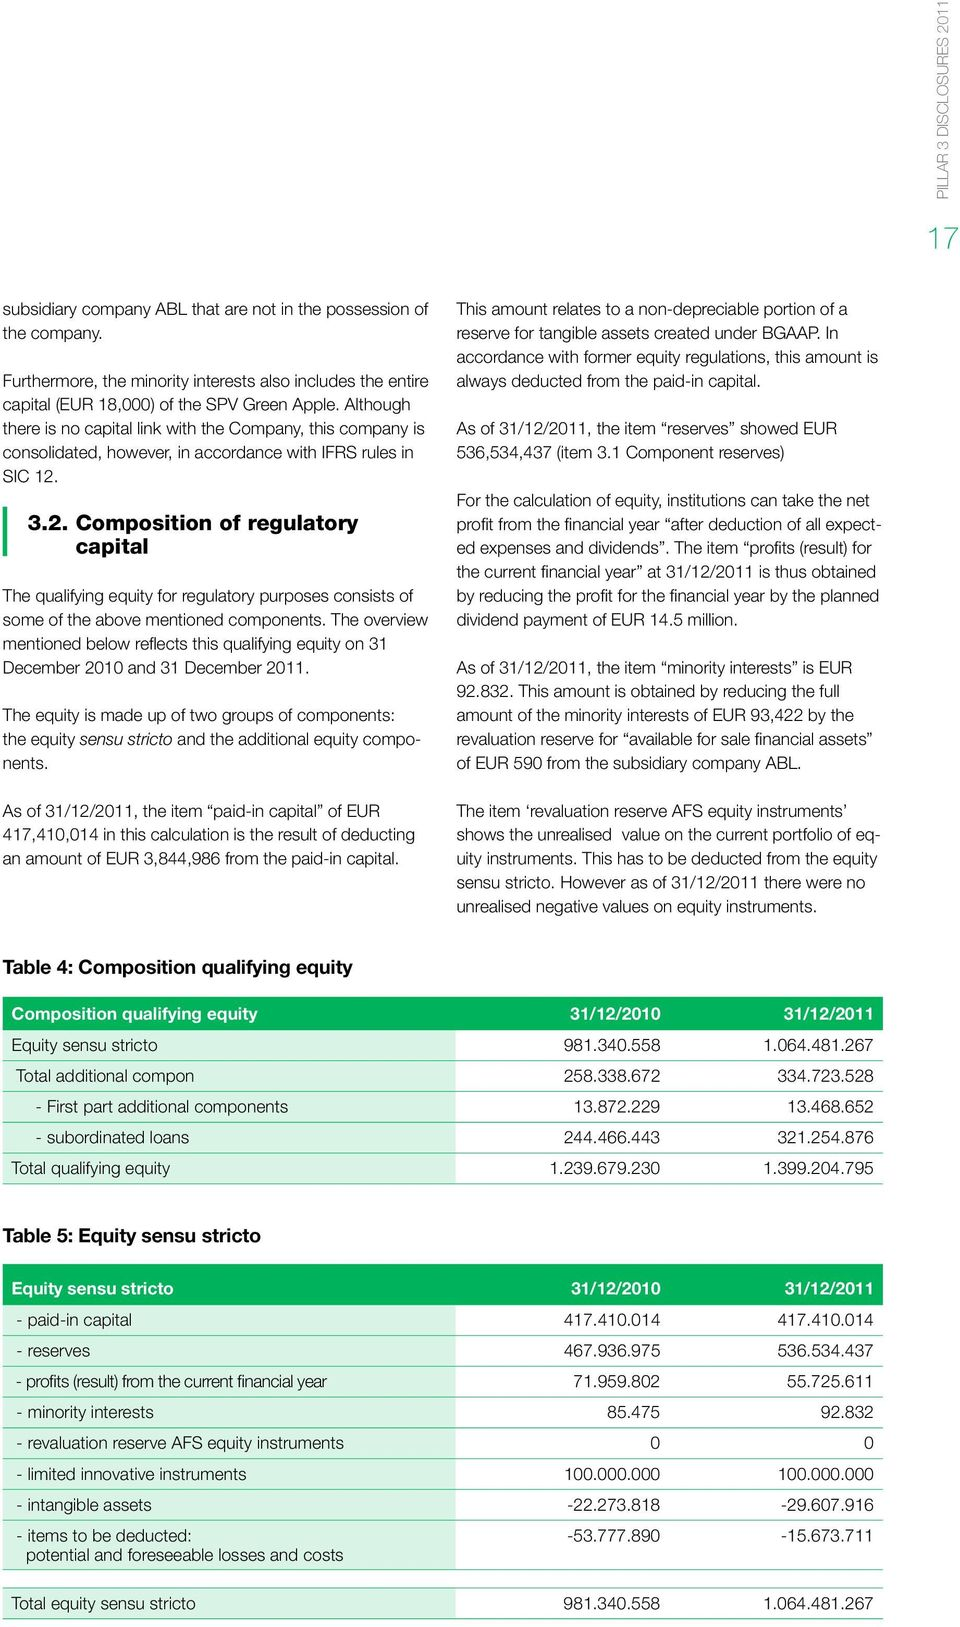 3.2. Composition of regulatory capital The qualifying equity for regulatory purposes consists of some of the above mentioned components.